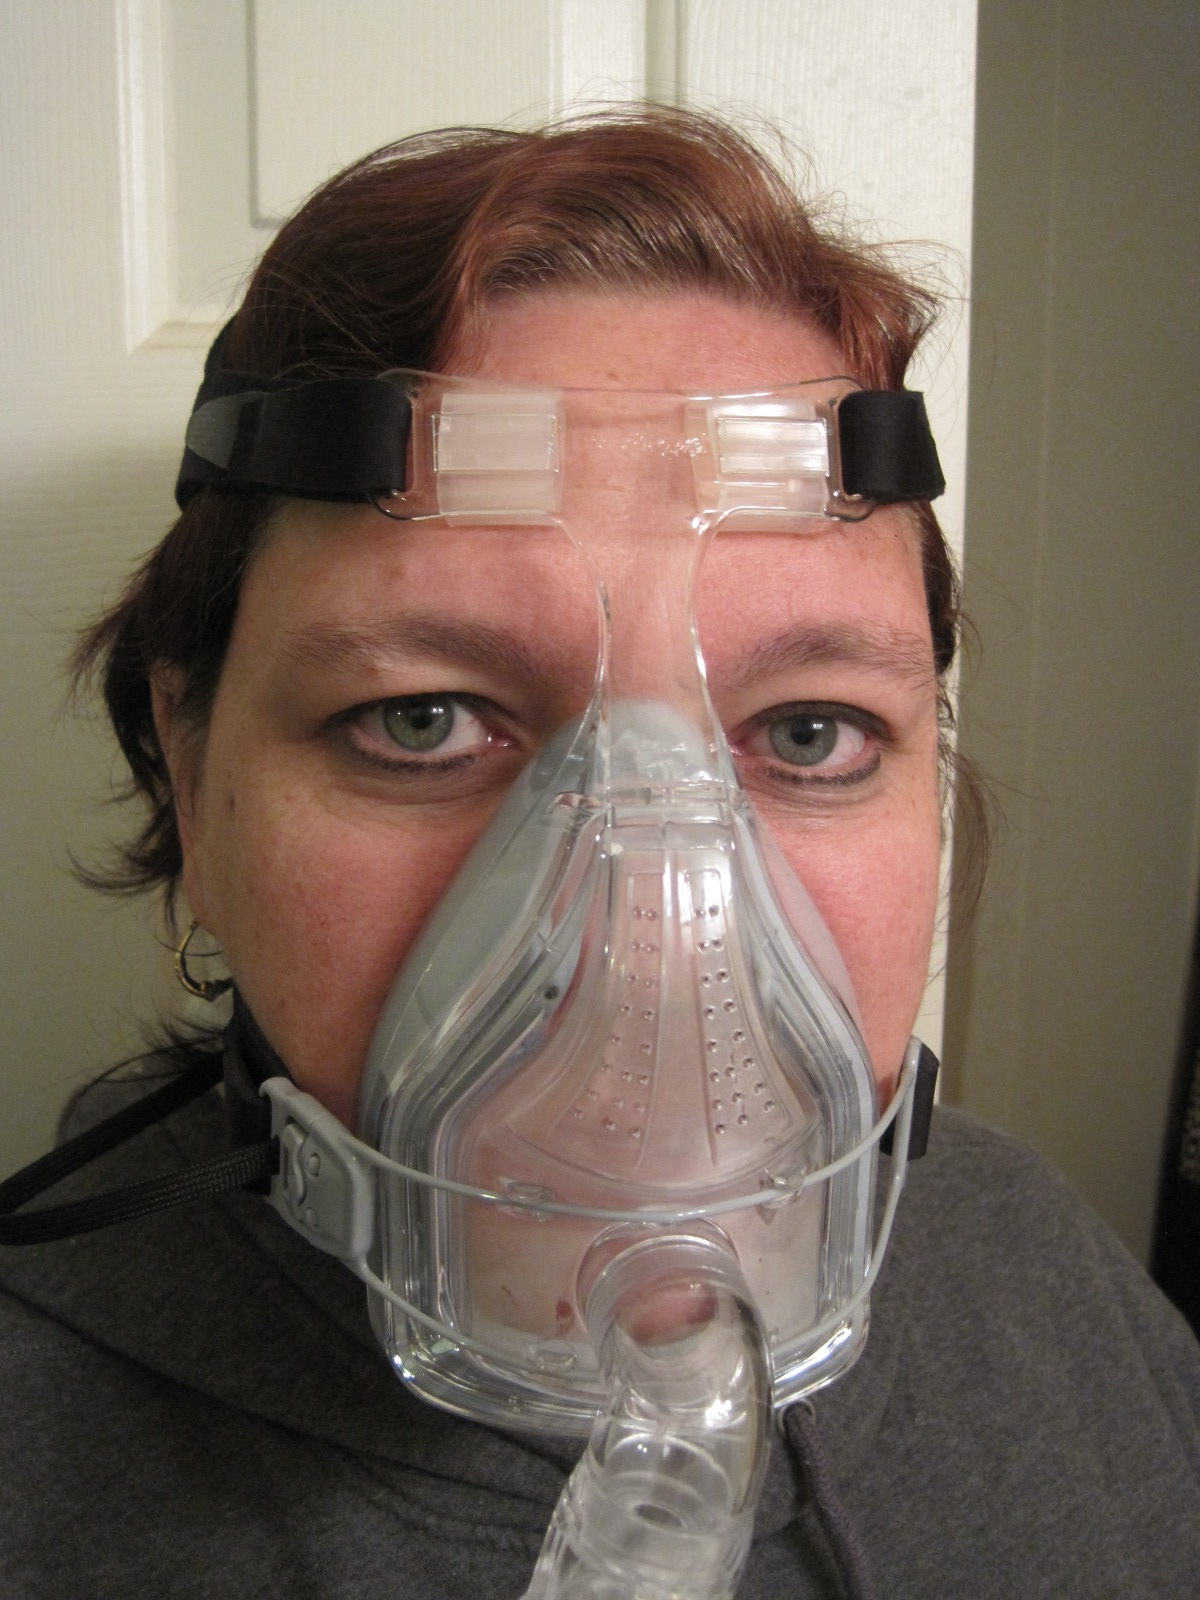 cpap machine without sleep study